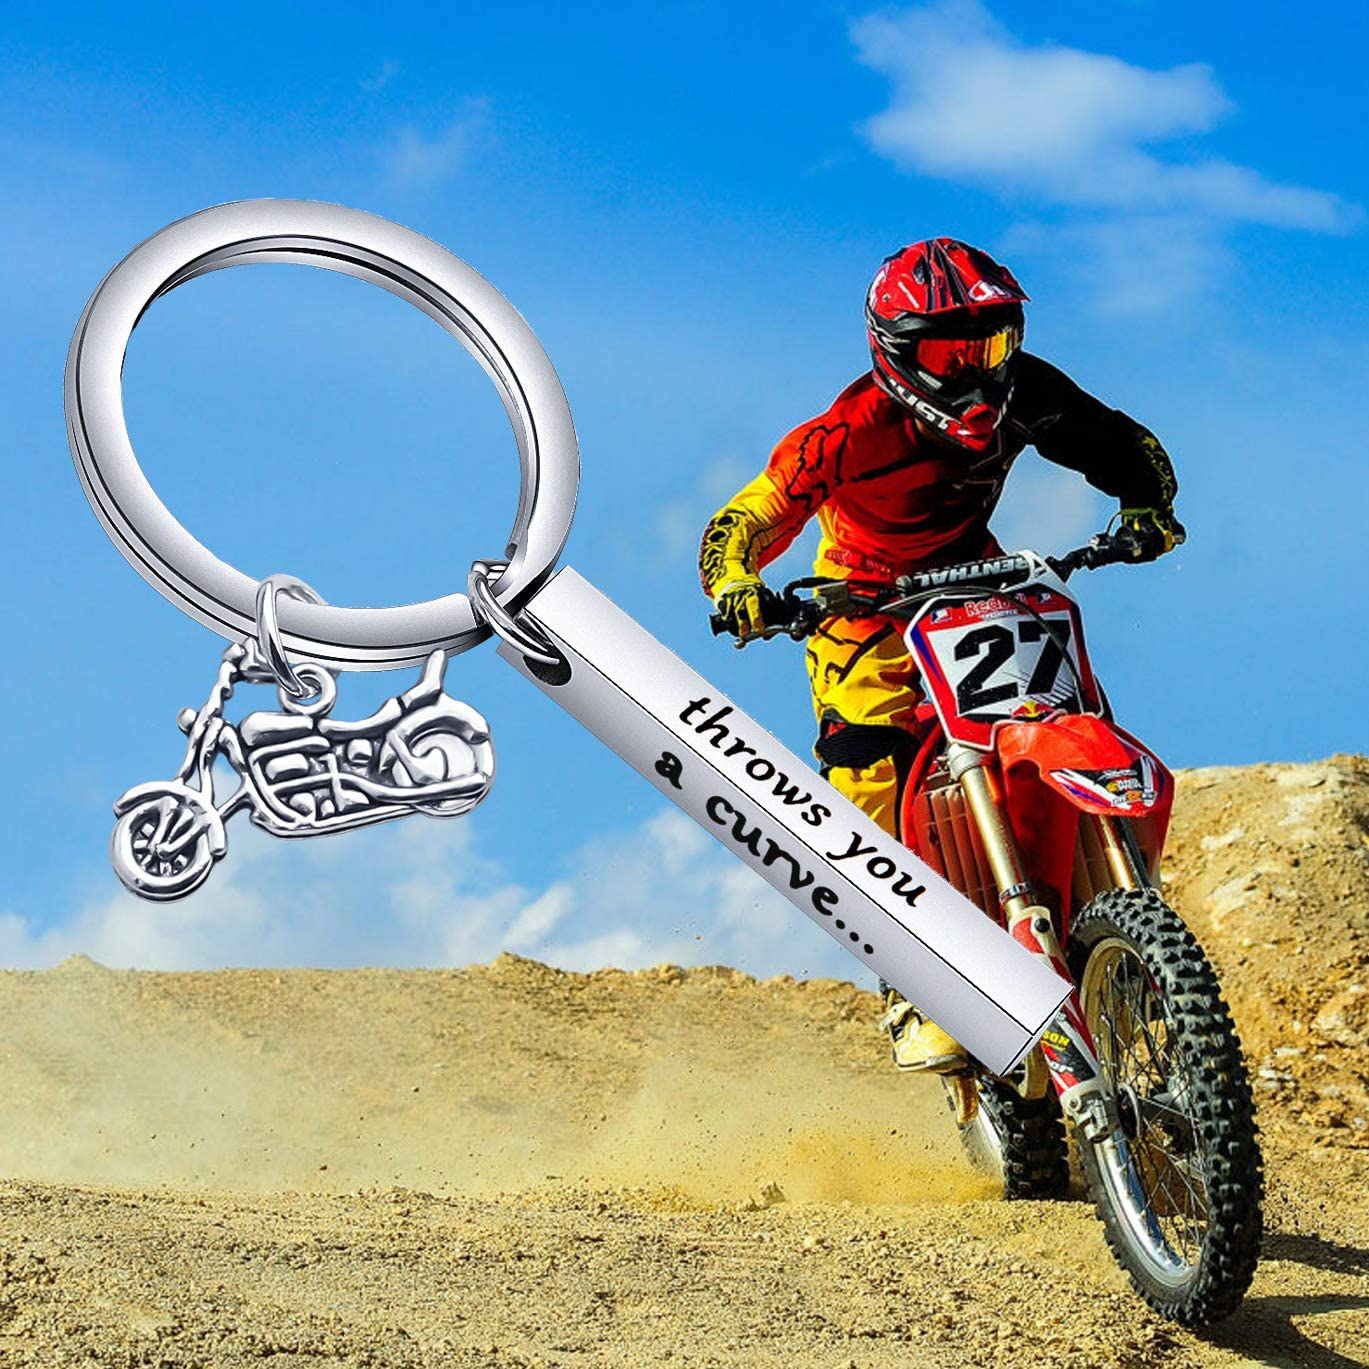 WUSUANED Motorcycle Keychain When Life Throws You A Curve Lean Into It Bike Gift for Dad Husband Boyfriends